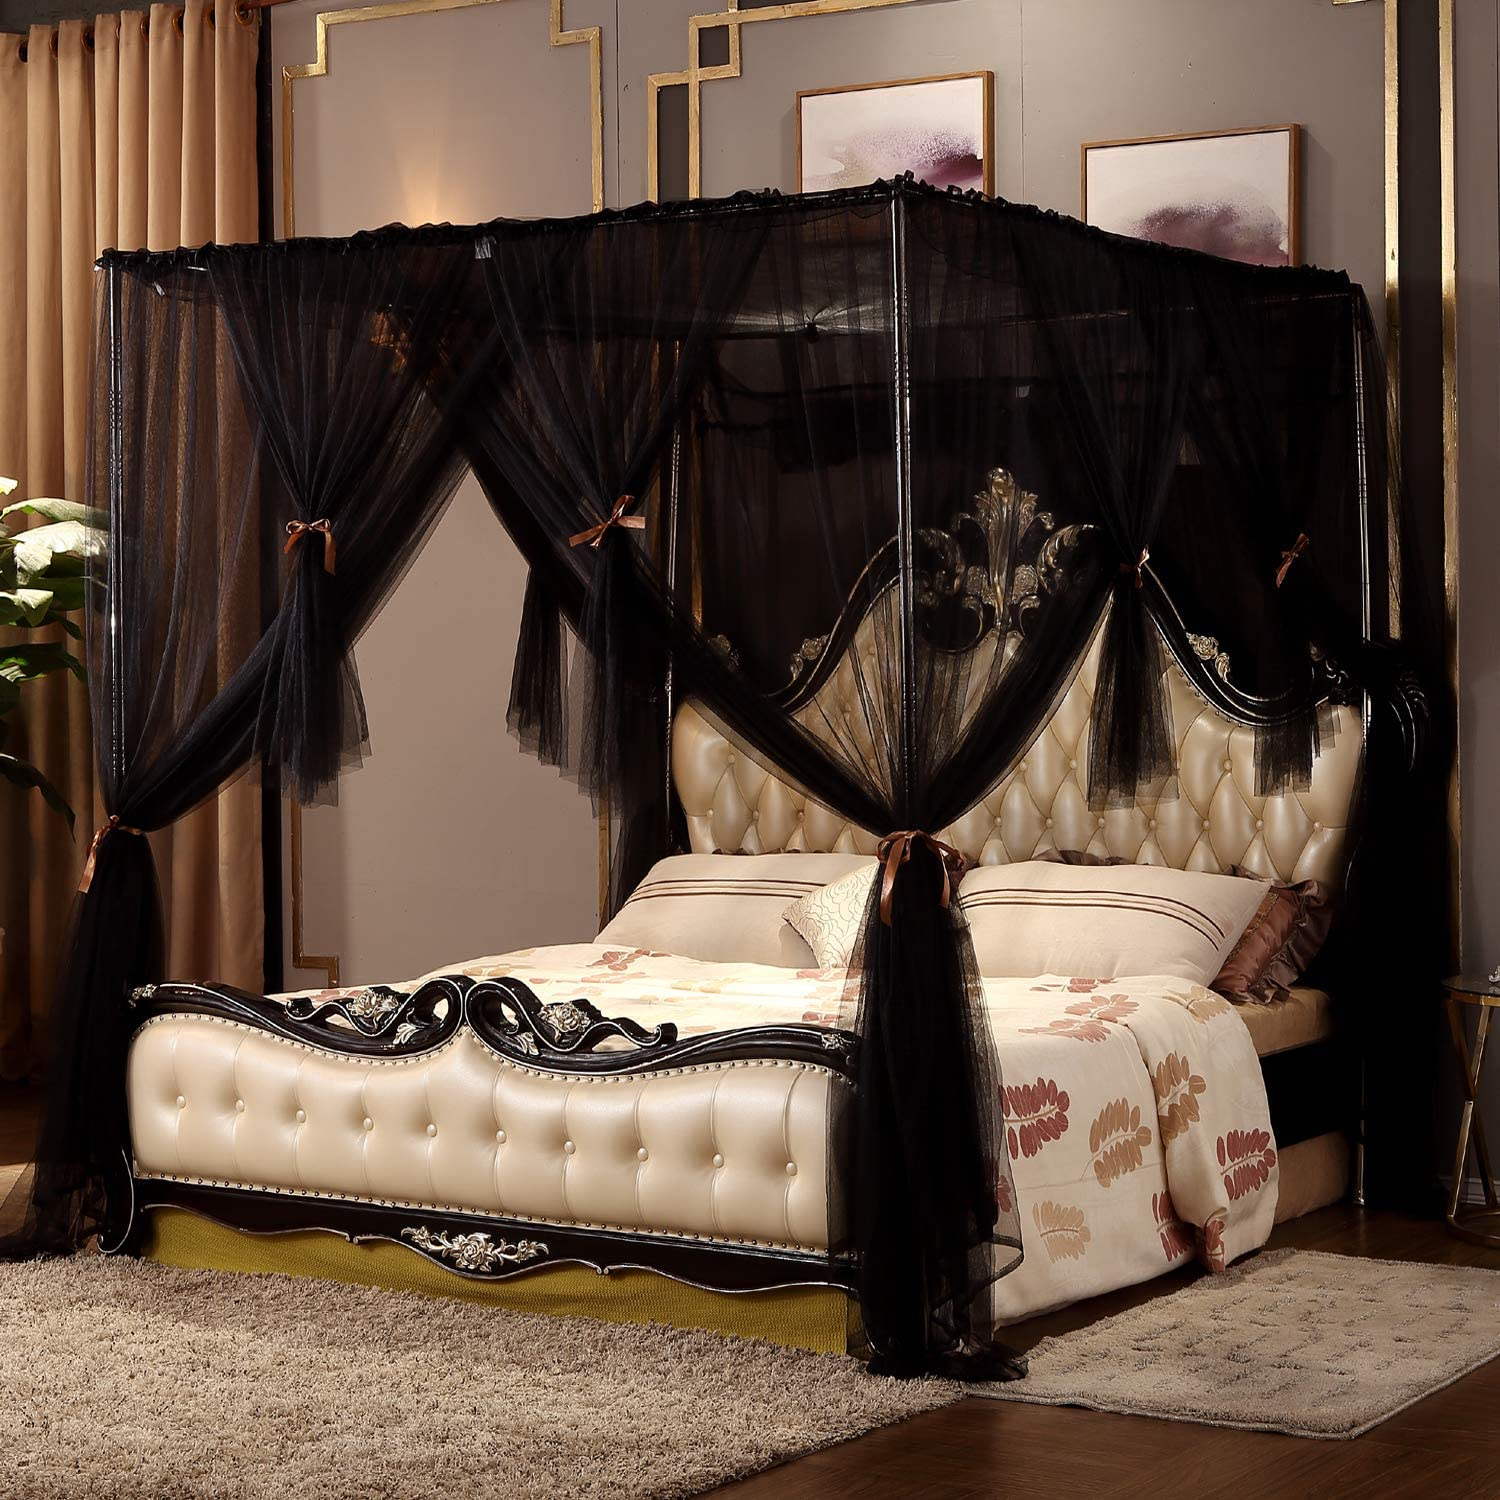 - Amazon.com: Nattey 4 Corners Post Canopy Bed Curtain For Girls